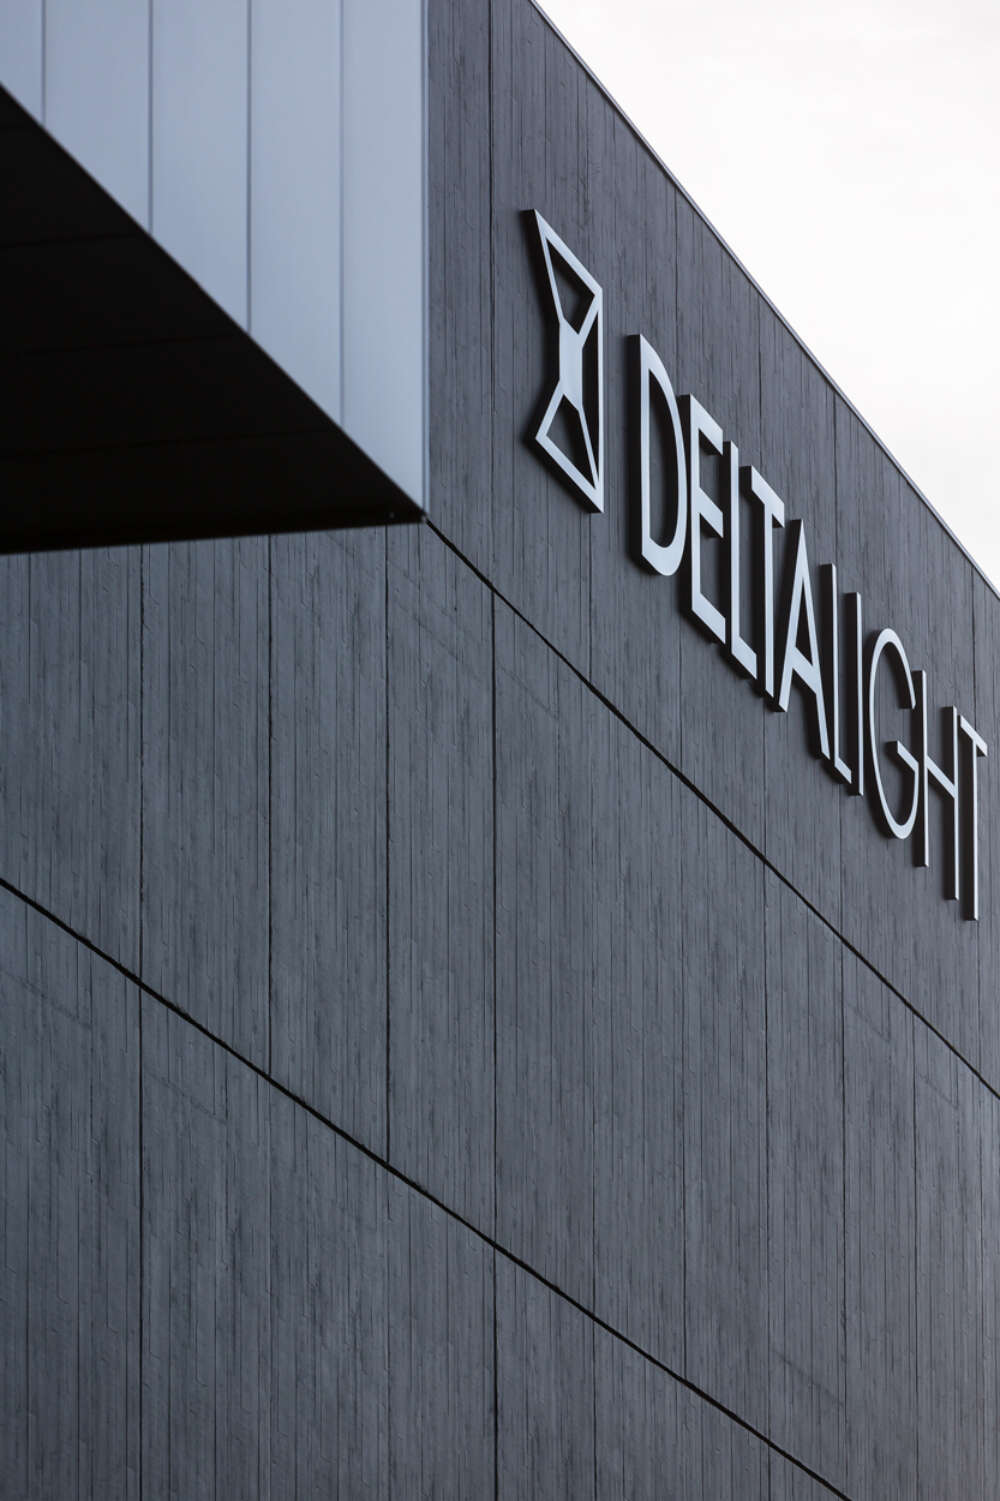 Woodstoxx deltalight hq photo cafeine be 1264